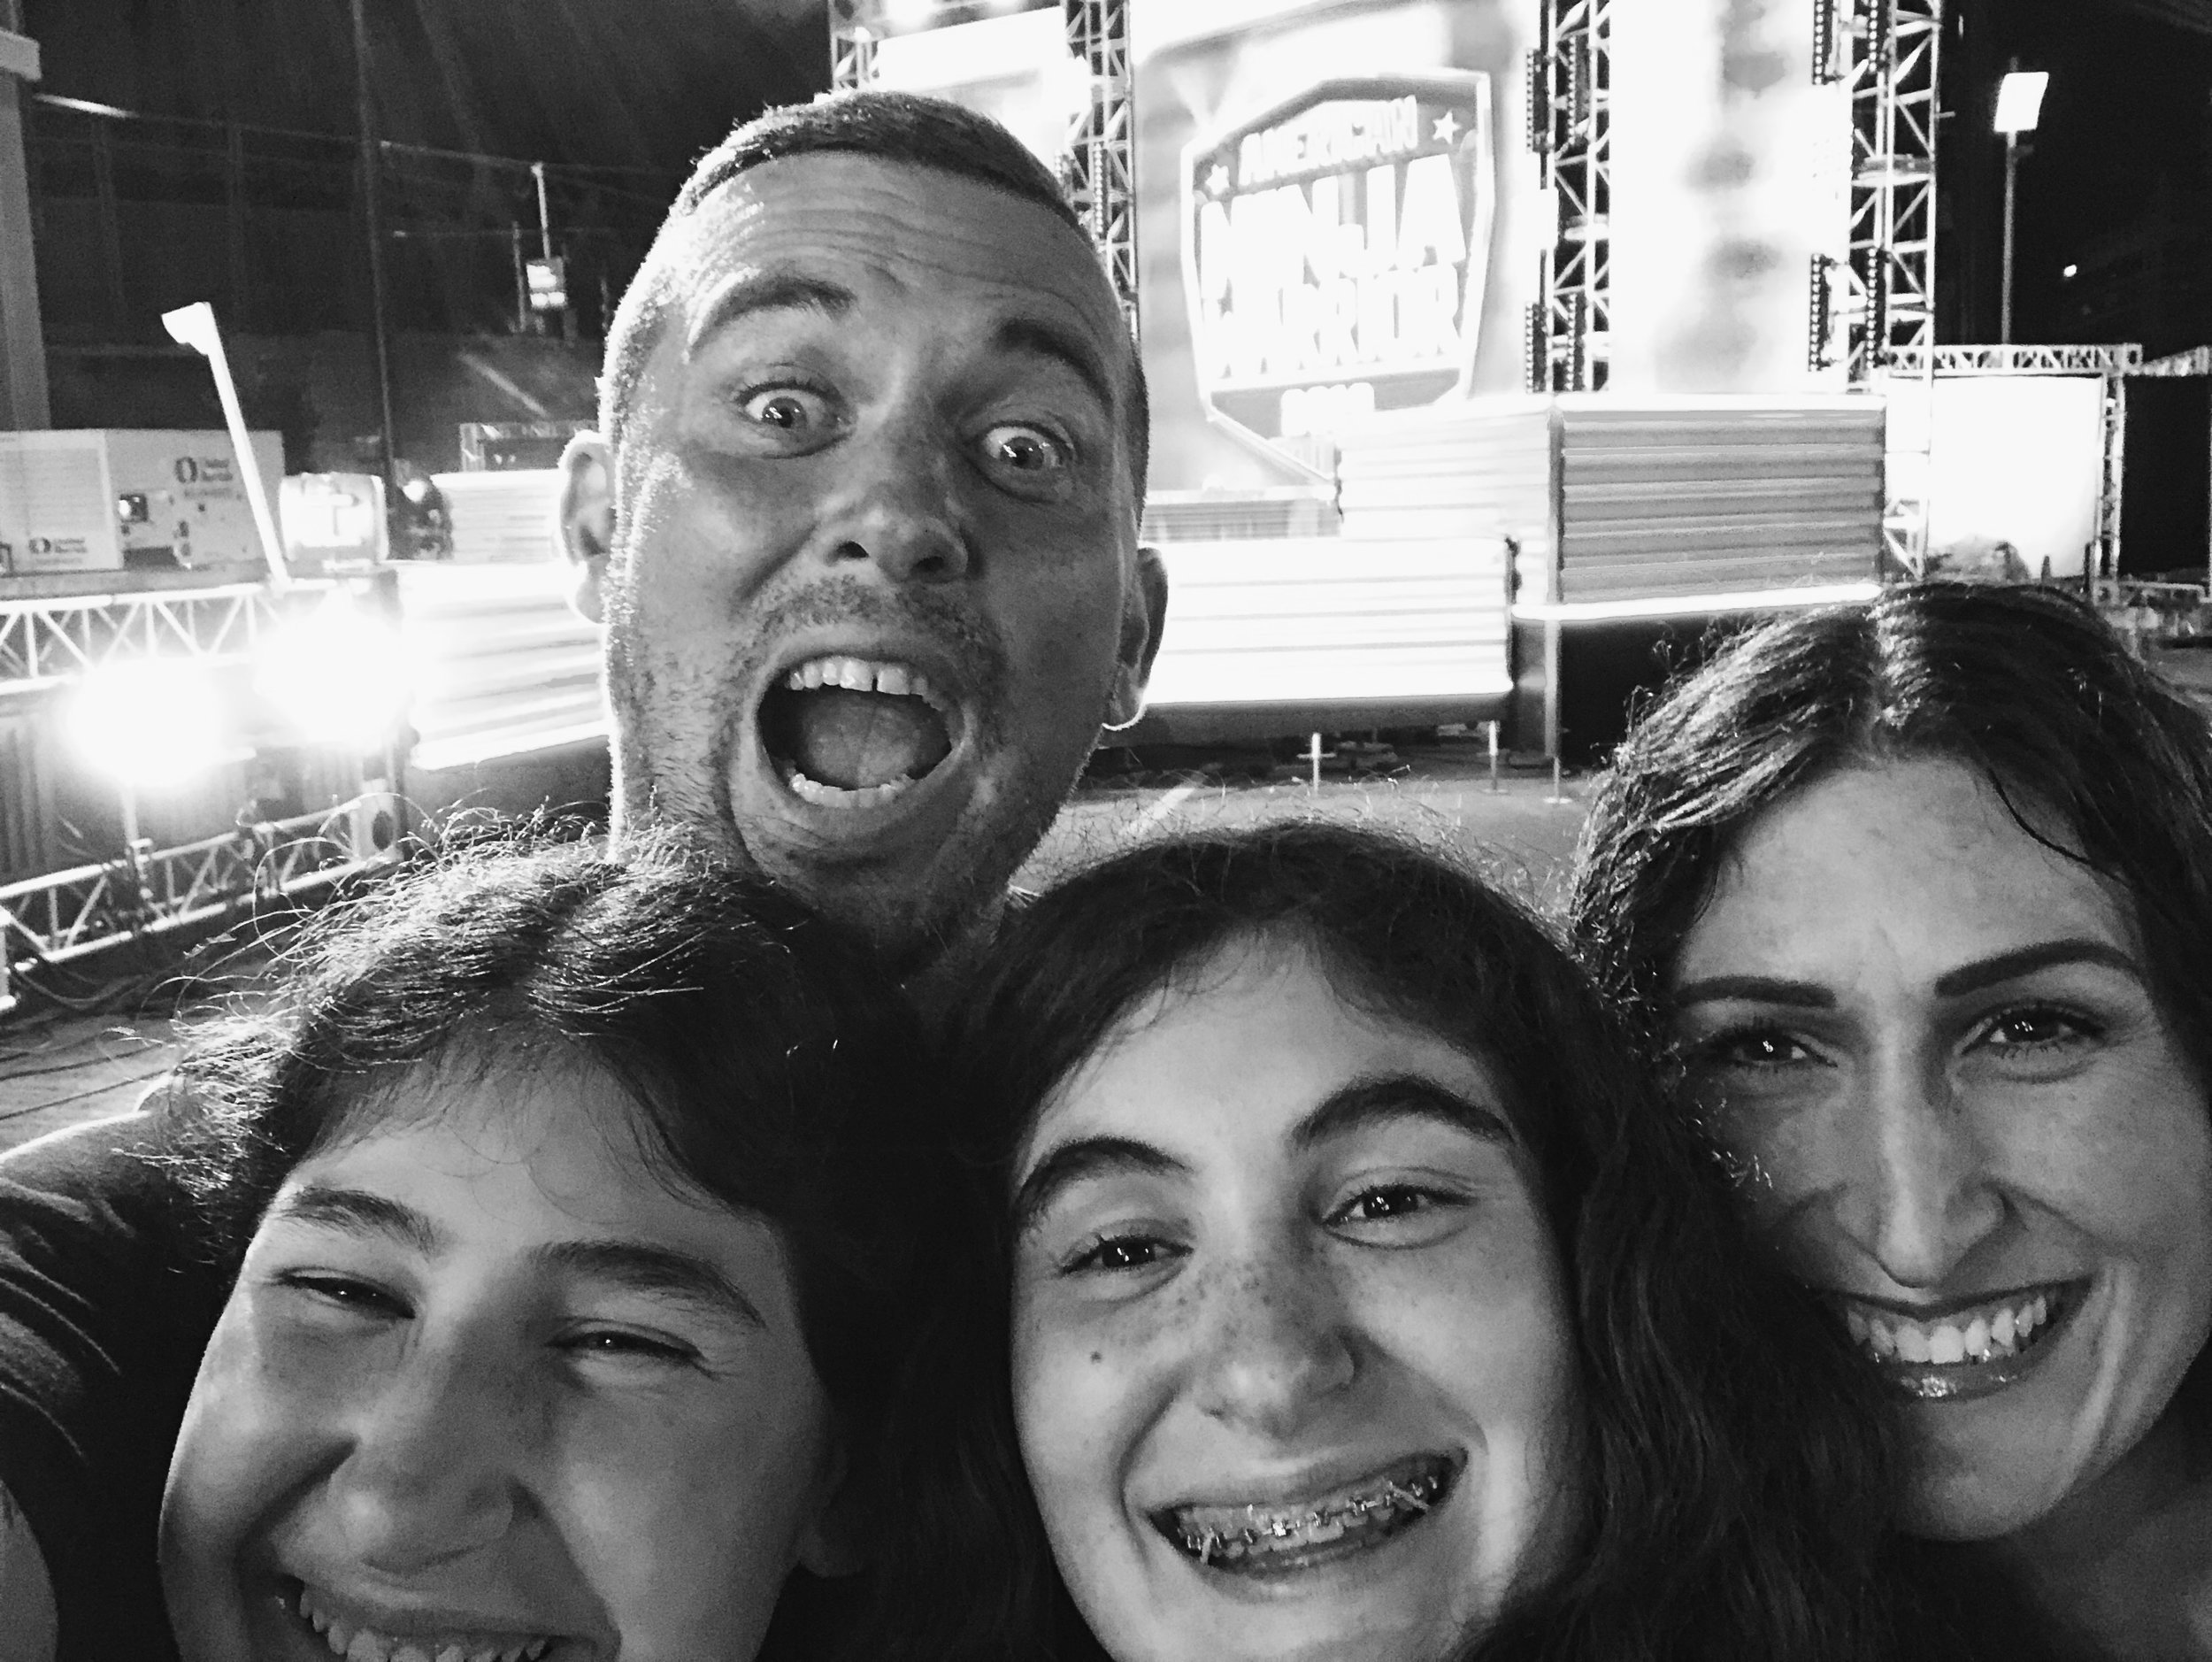 Making Moments with my family. 4am at the taping of American Ninja Warrior.